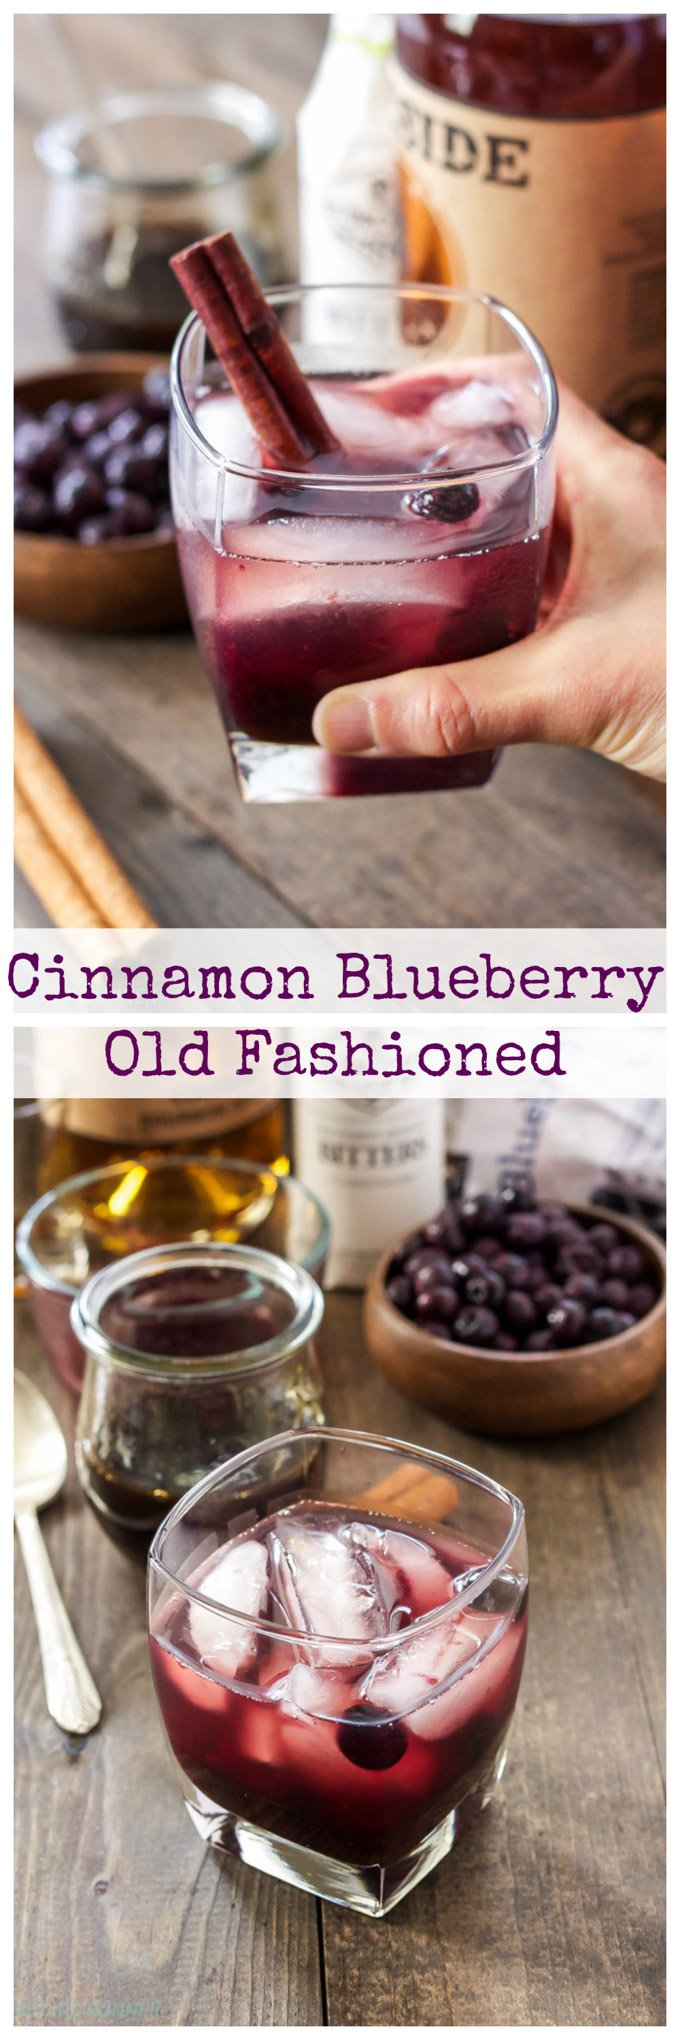 Cinnamon Blueberry Old Fashioned | Give your old fashioned cocktail a holiday twist by adding blueberries and a sweet cinnamon simple syrup! #ad #LittleChanges